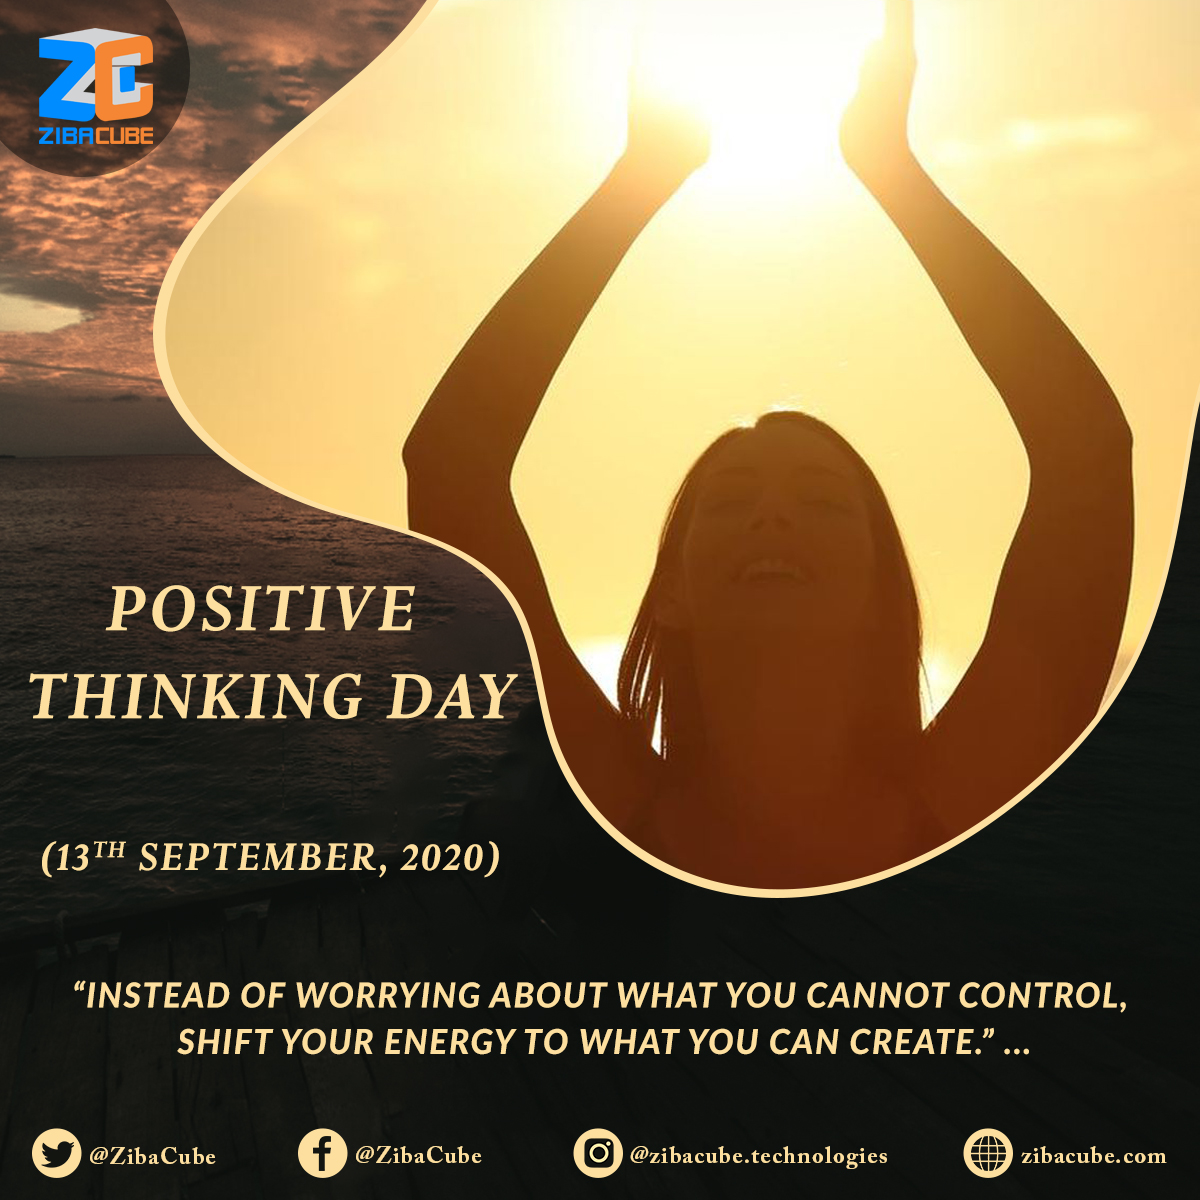 #PositiveThinkingDay is a time set aside each year to concentrate on all things #positive 🤞 . . #PositiveThinking #PositiveThoughts #PositiveVibes #Positivity #PositiveEnergy #Mindfulness #AllYouNeedIsPositivity #PositiveVibesOnly #TrendThePositive #DM #SEO #SMM #WeAreZibacubers https://t.co/YaKPiGirKb